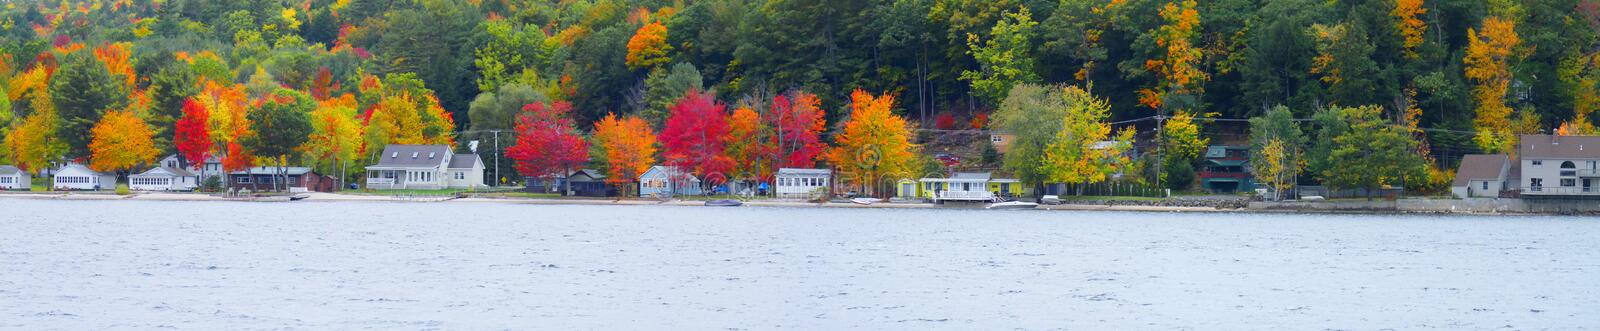 Newfound Lake royalty free stock images